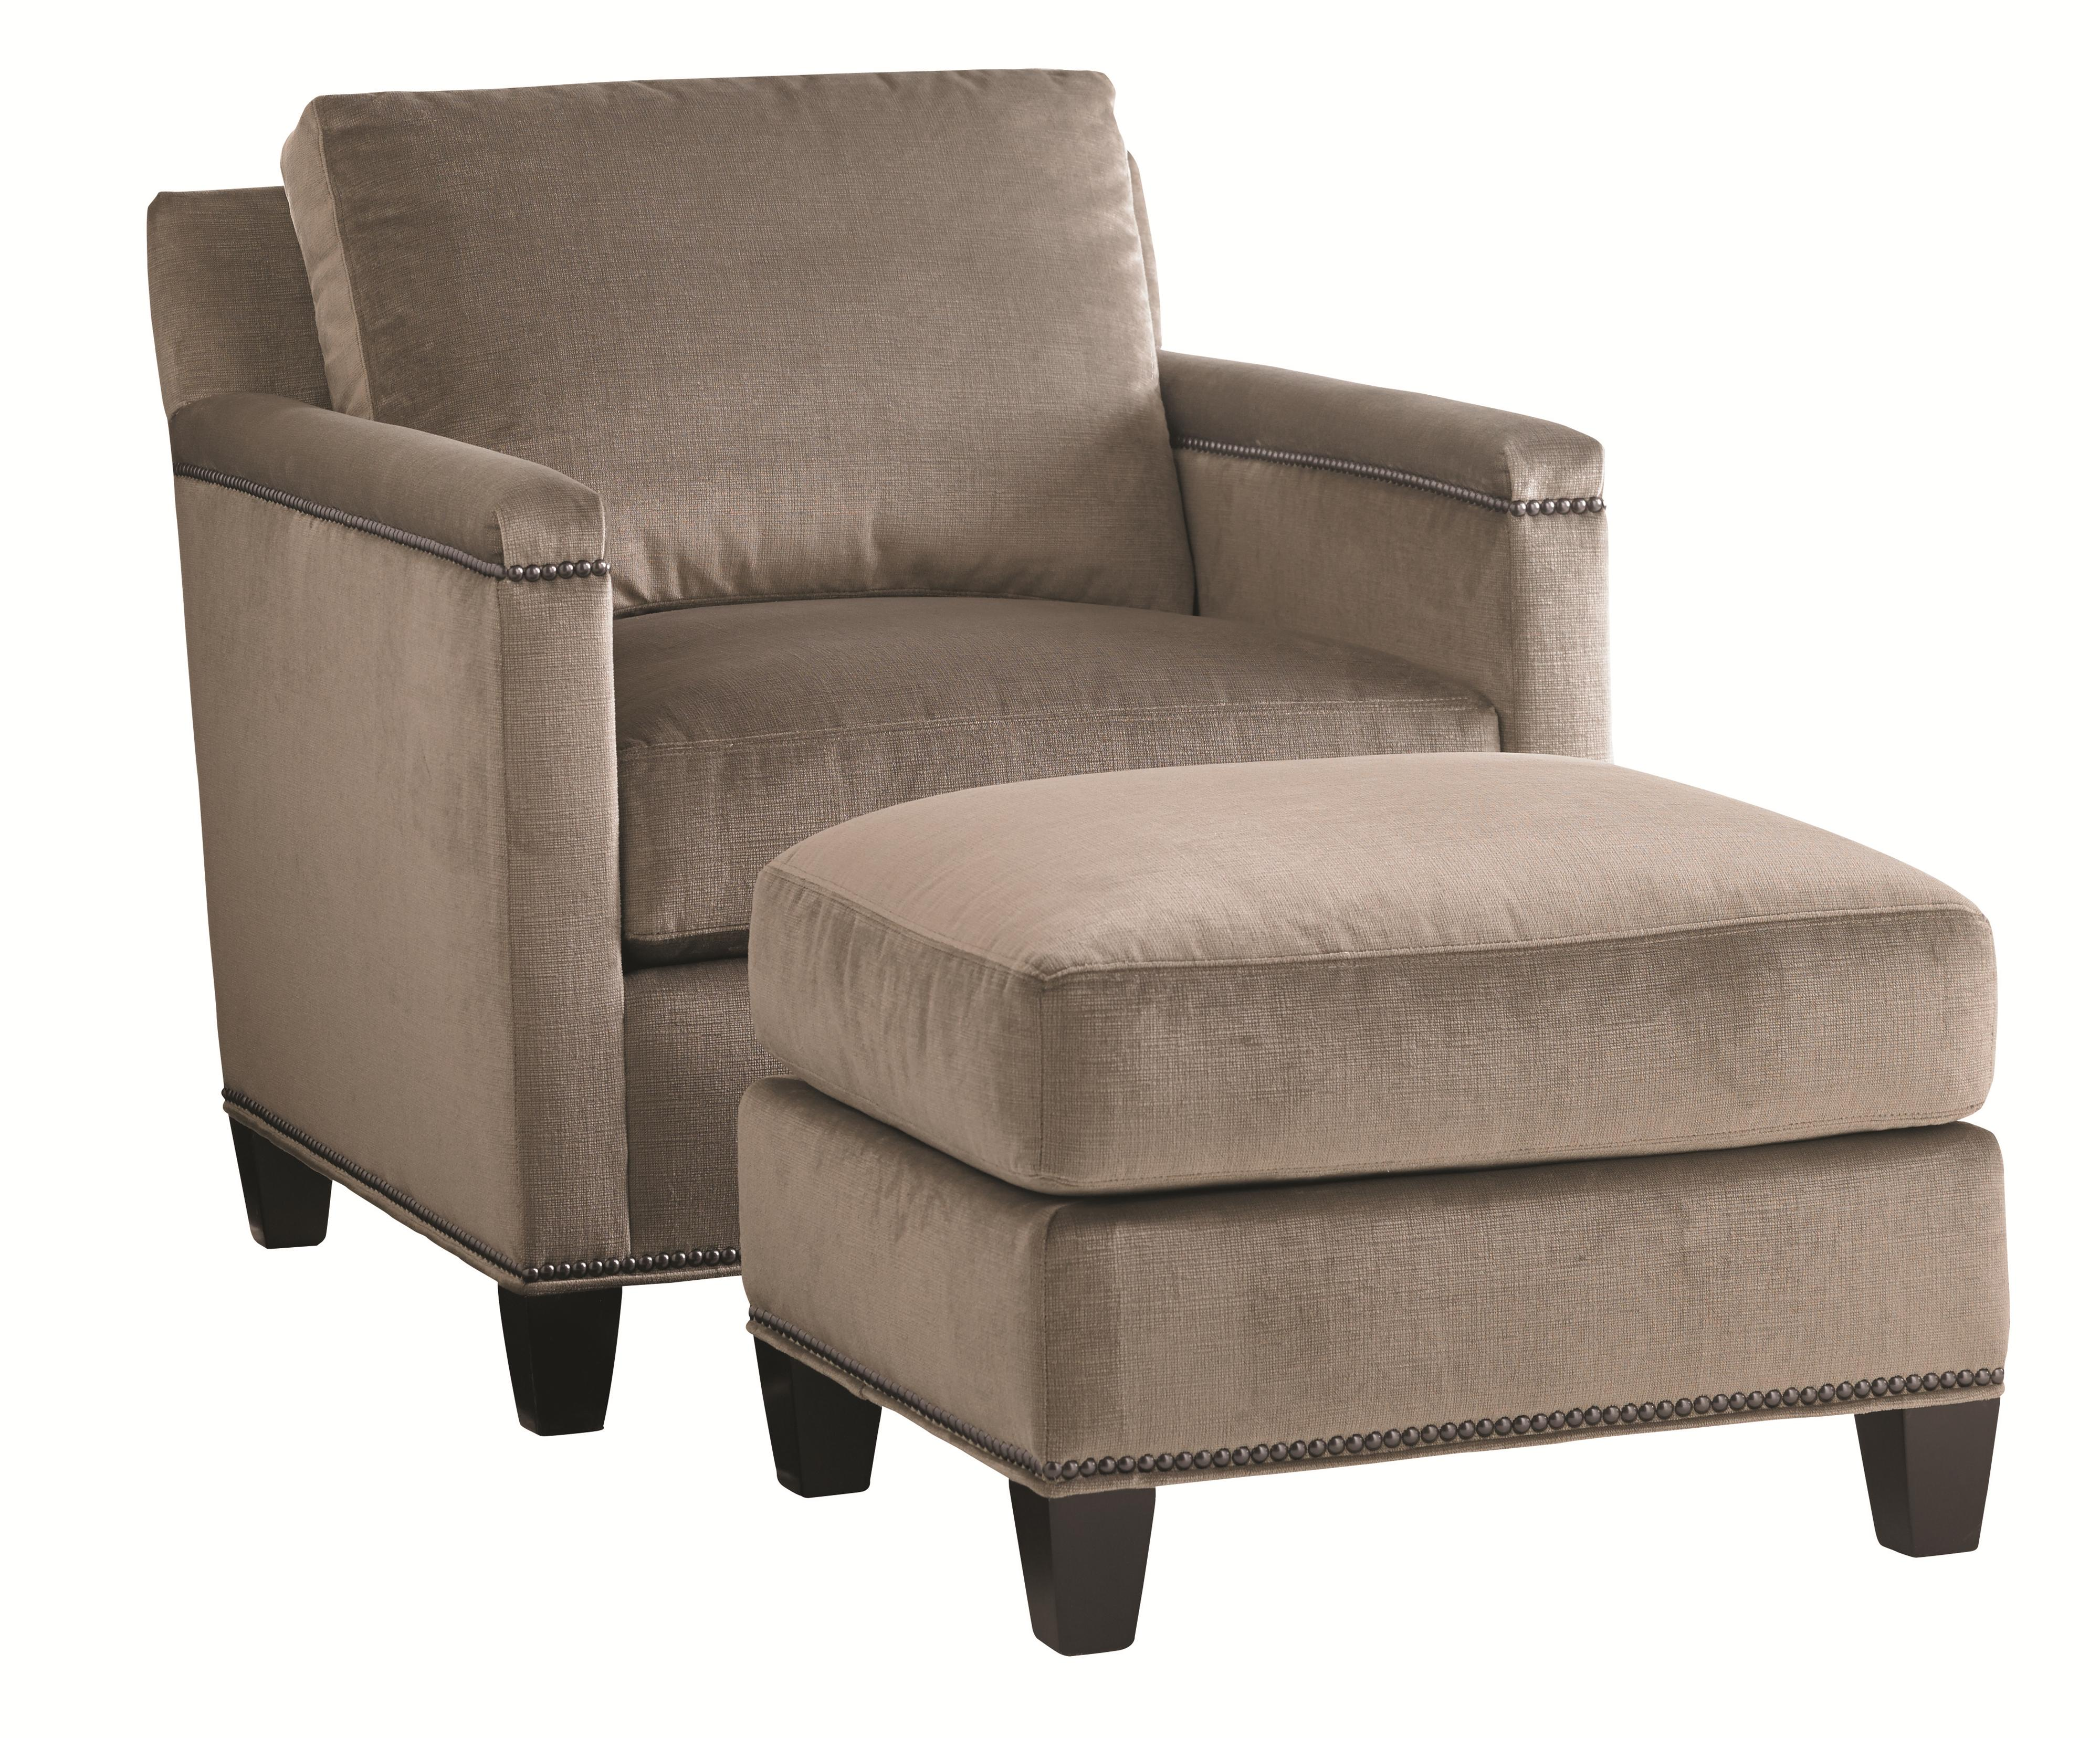 Carrera Stationary Chair and Ottoman Set by Lexington at Malouf Furniture Co.